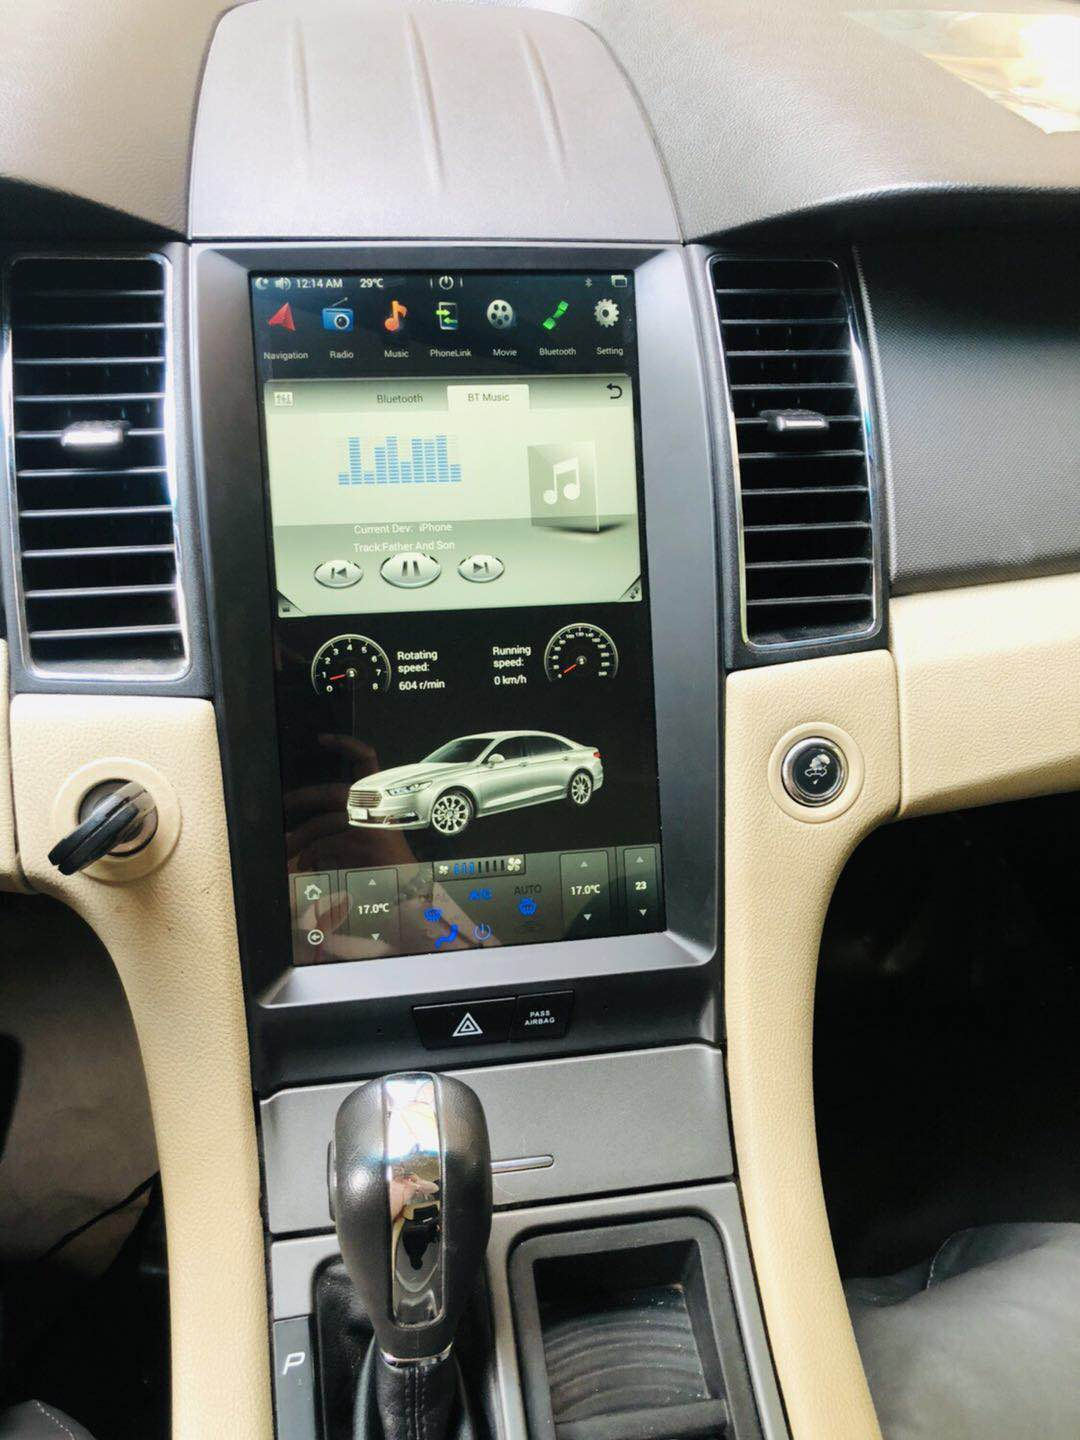 "[Open Box] Ford Taurus 2013 - 2019 13.3"" Vertical Screen Android Radio Tesla Style with 2K Resolution"